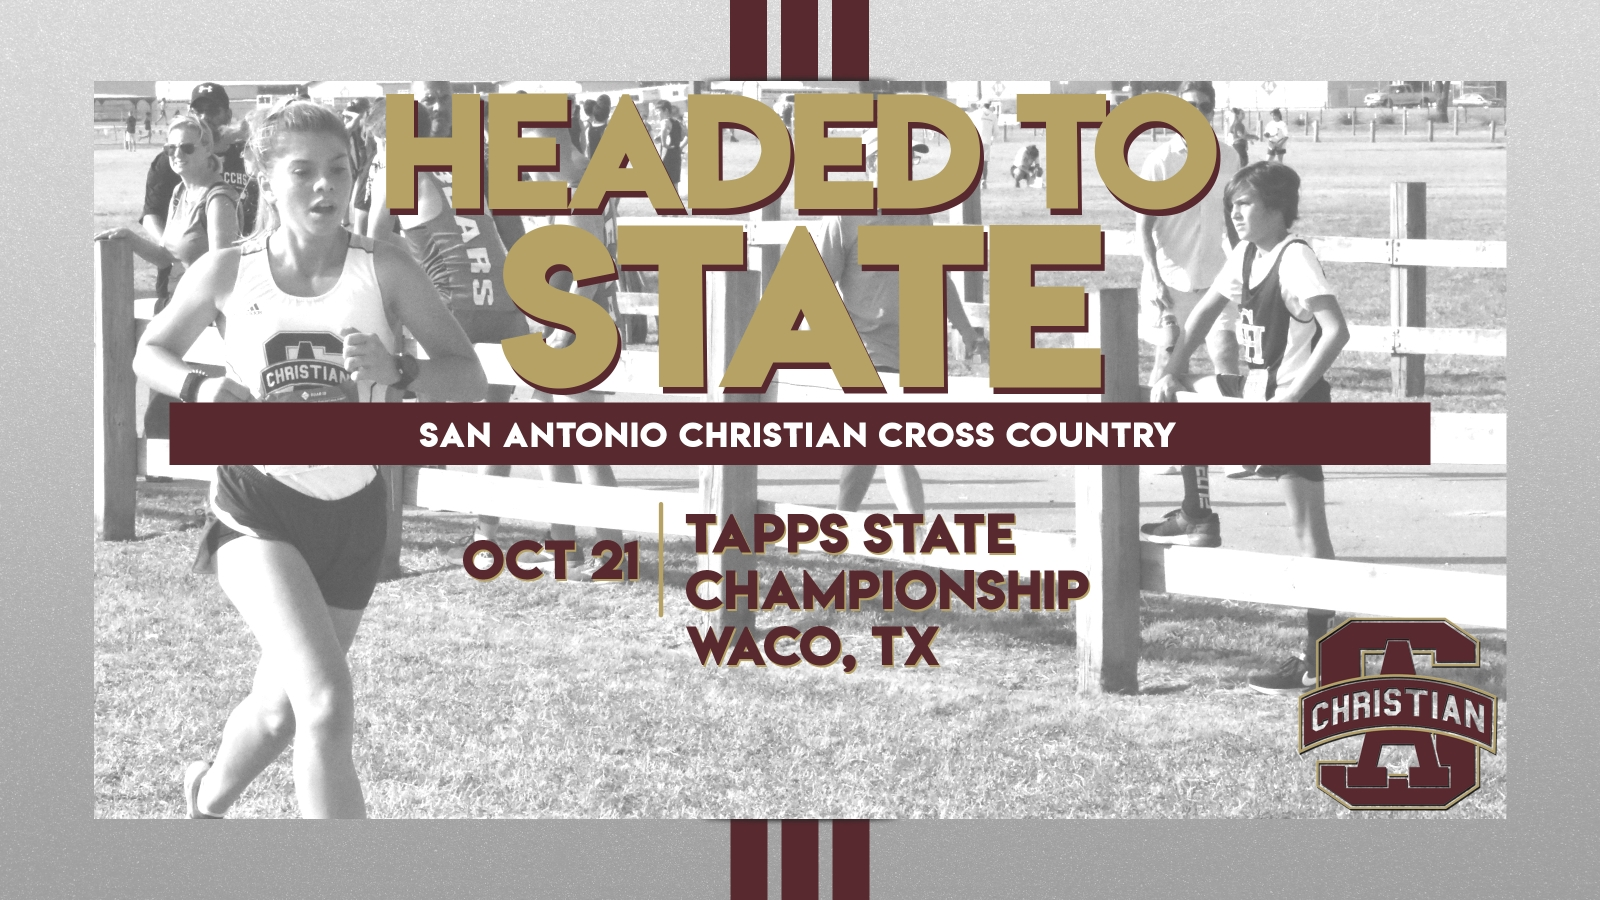 Cross Country is looking to bring home some Hardware!